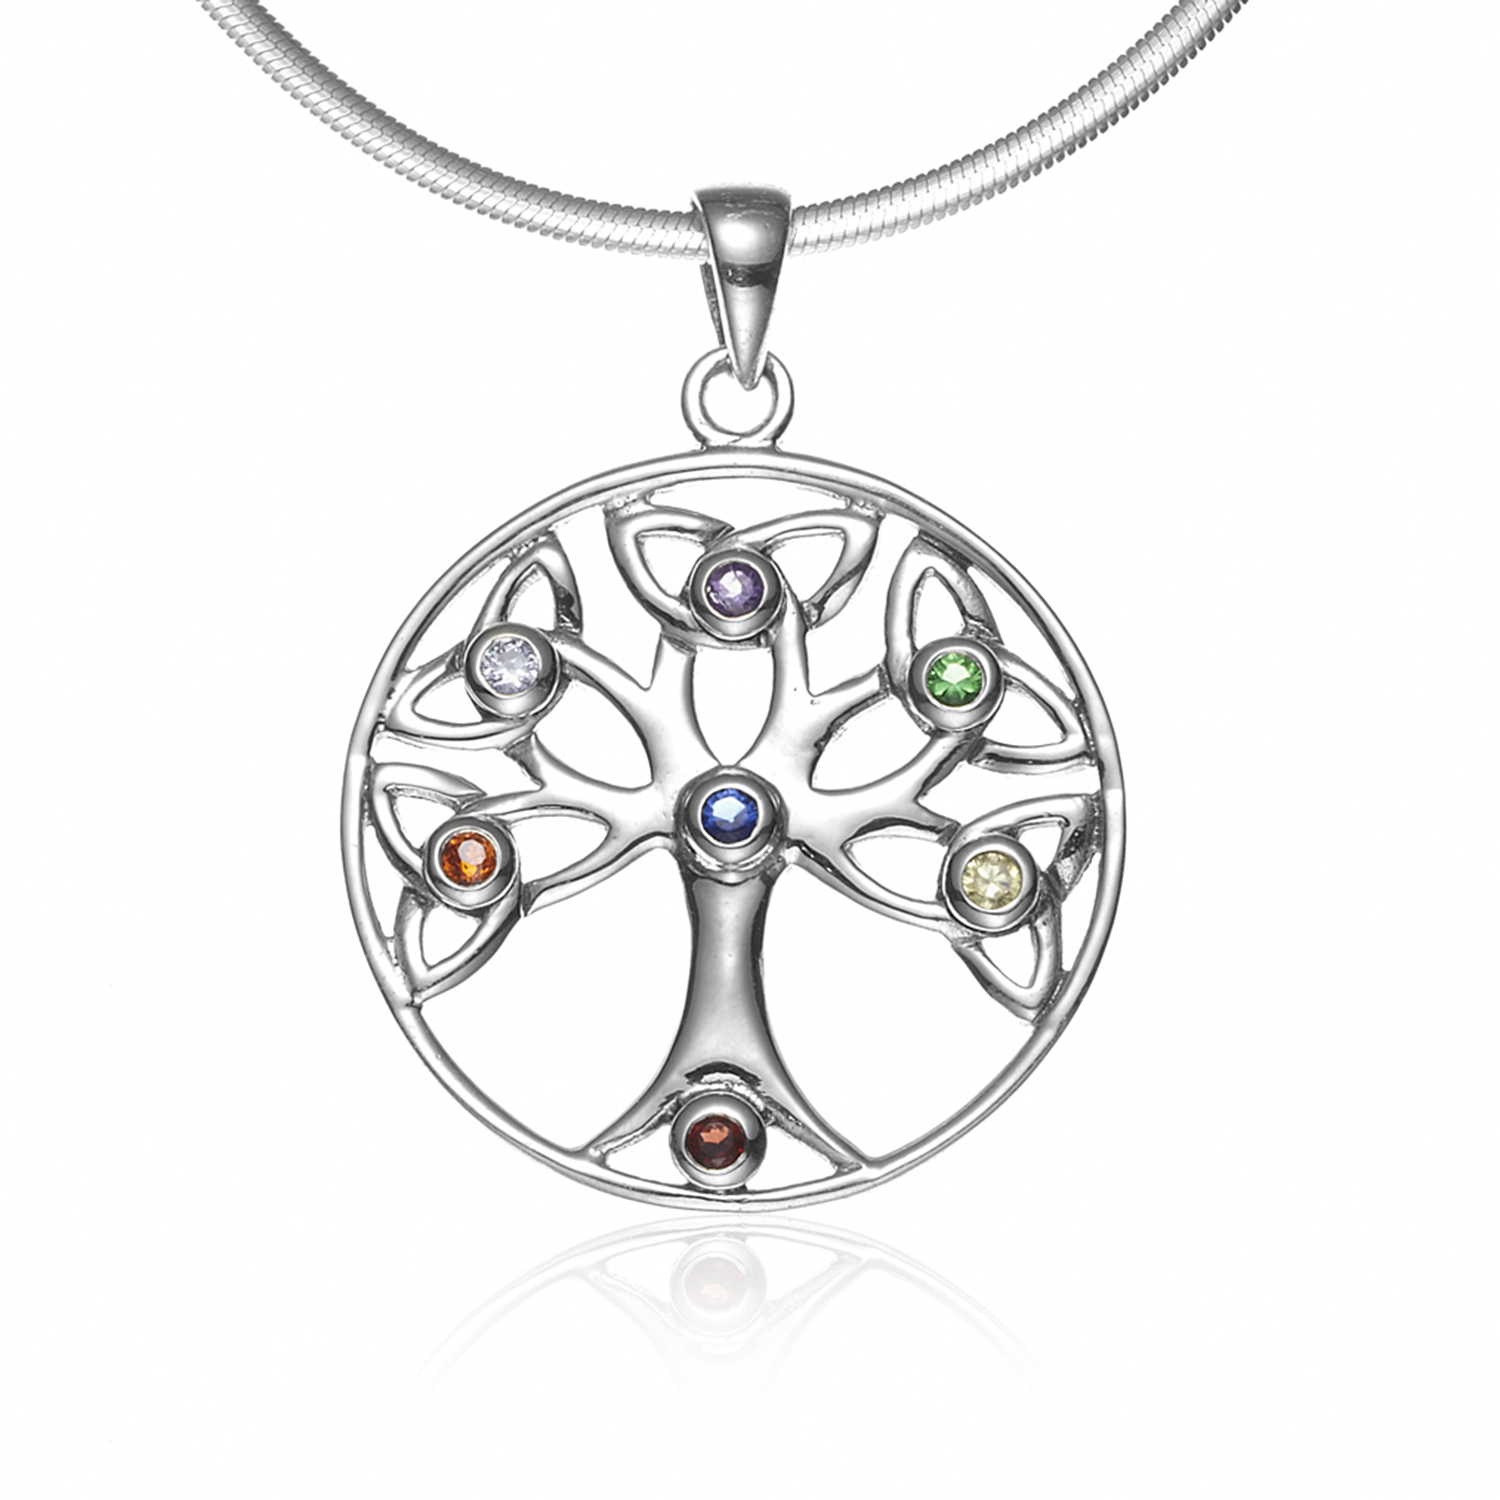 925 Sterling Silver Celtic Knot Trinty Tree of Life Seven (7) Chakras Pendant Necklace, 18 inches